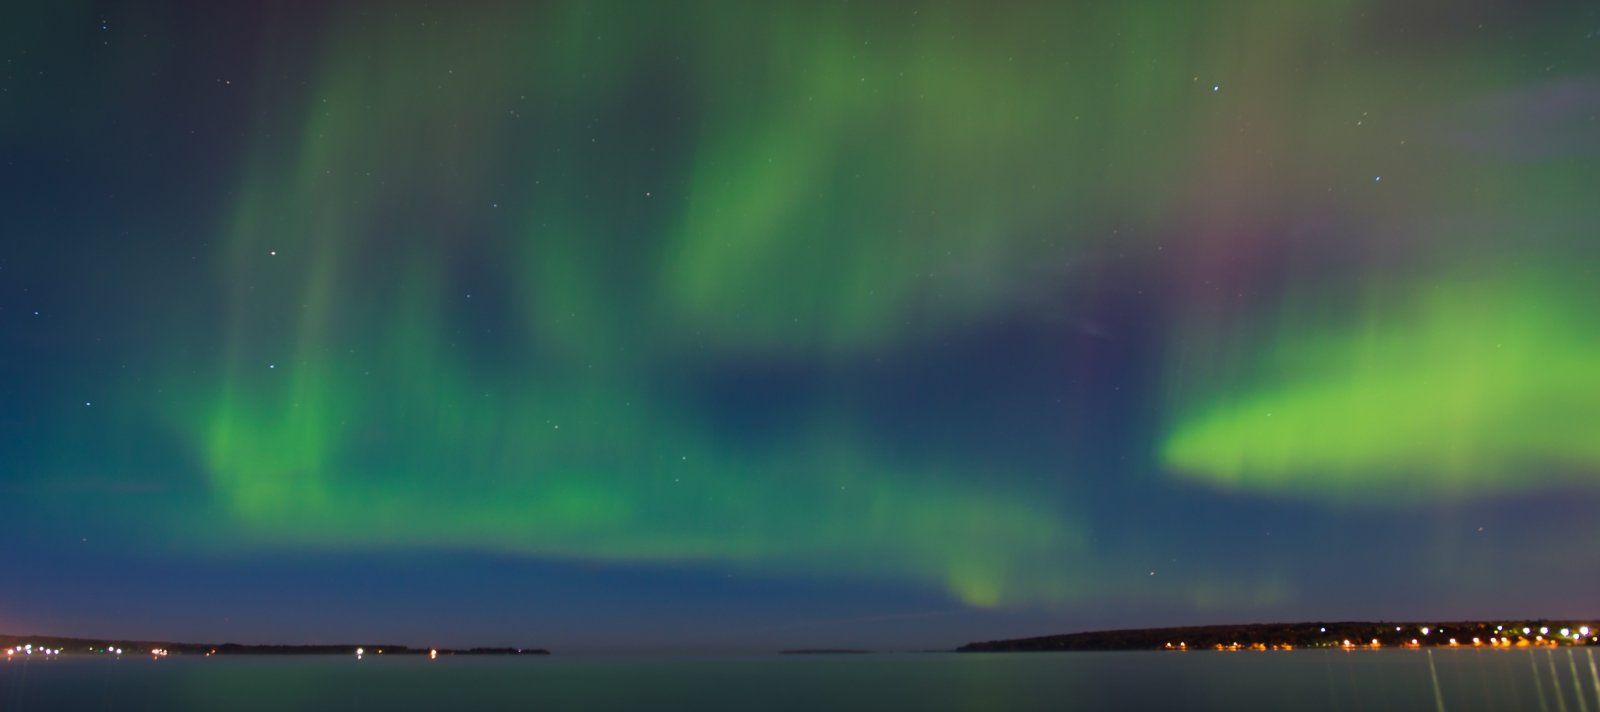 Northern Lights (Aurora Borealis) | Michigan Technological University